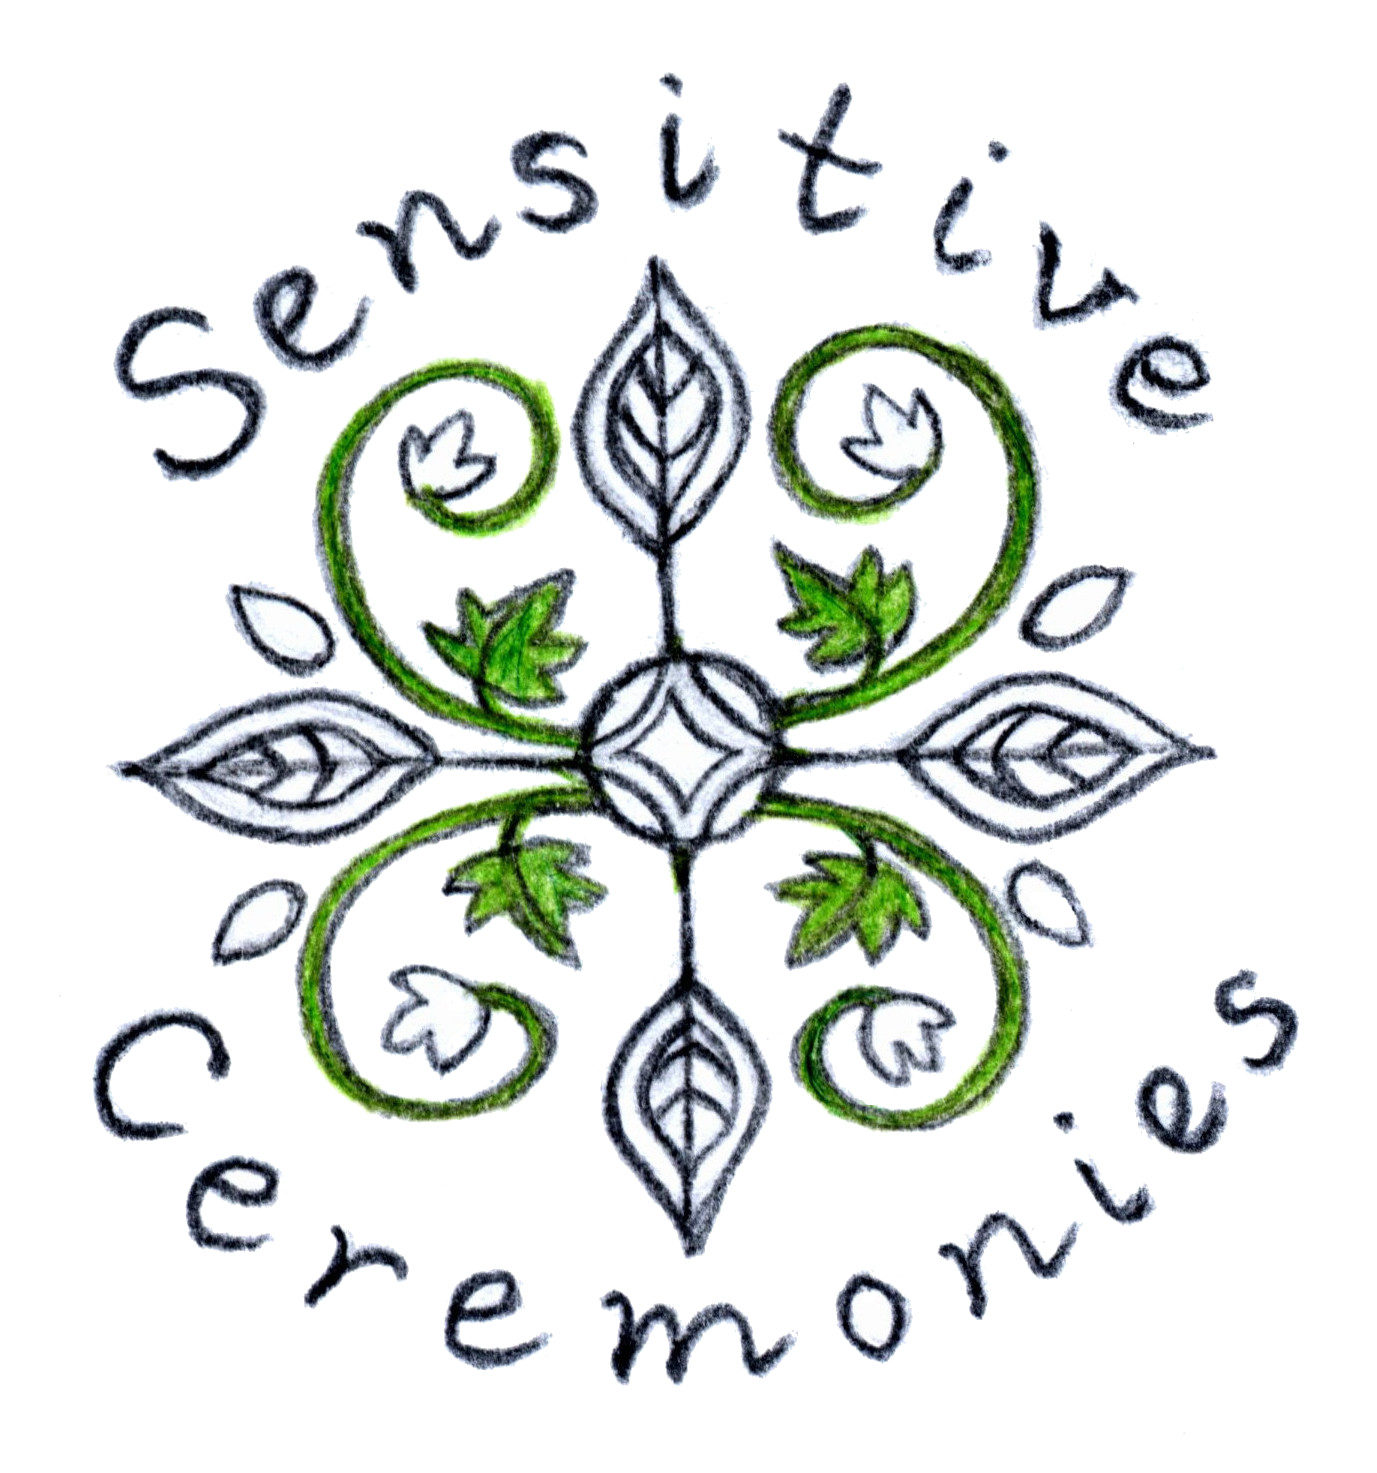 Sensitive Ceremonies